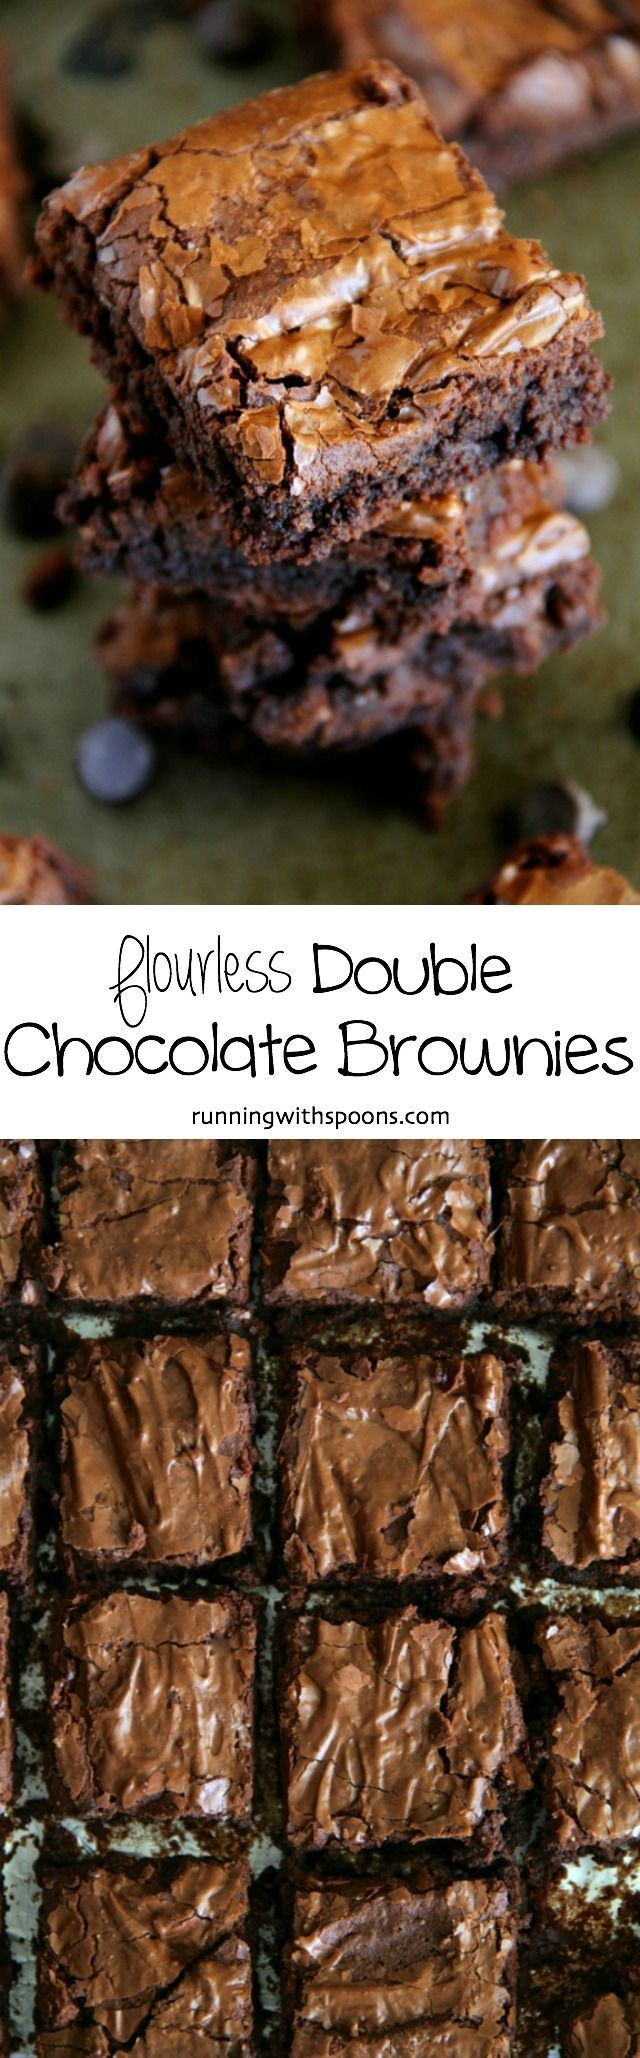 Flourless Double Chocolate Brownies - naturally gluten-free and made without beans! || http://runningwithspoons.com